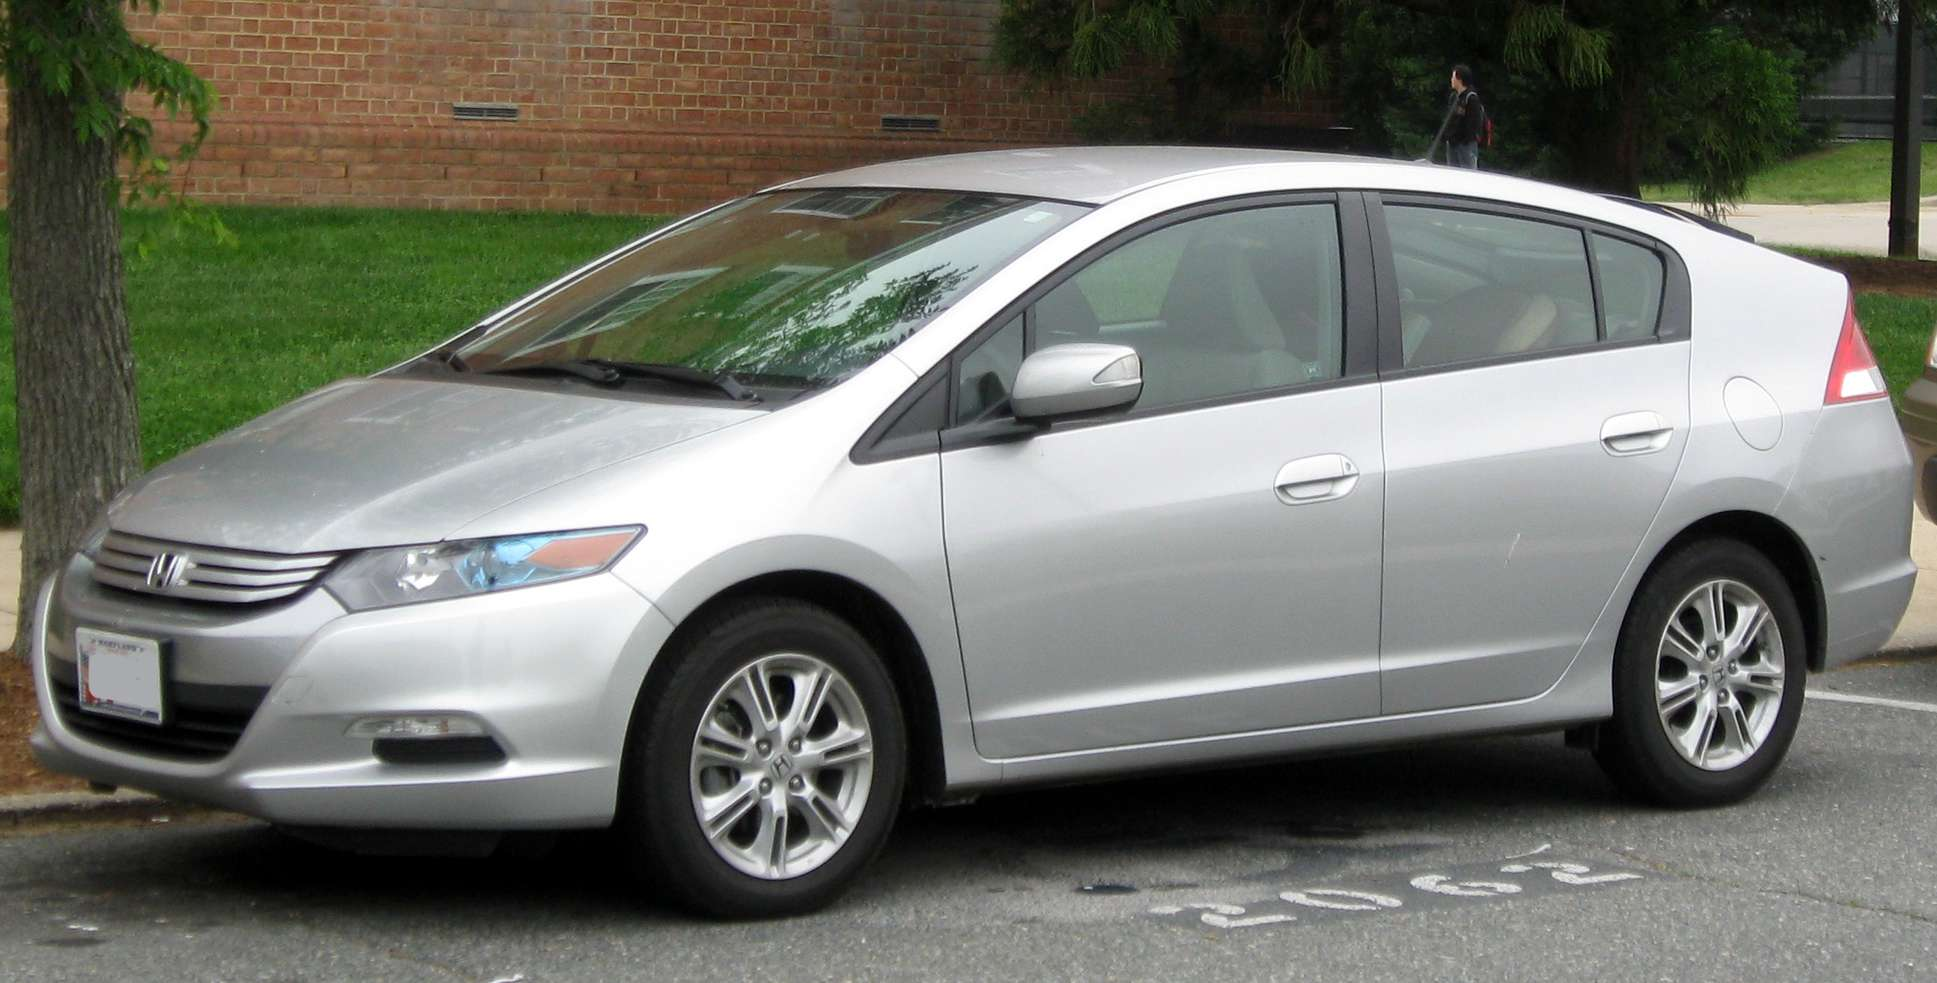 Honda Insight #8355862